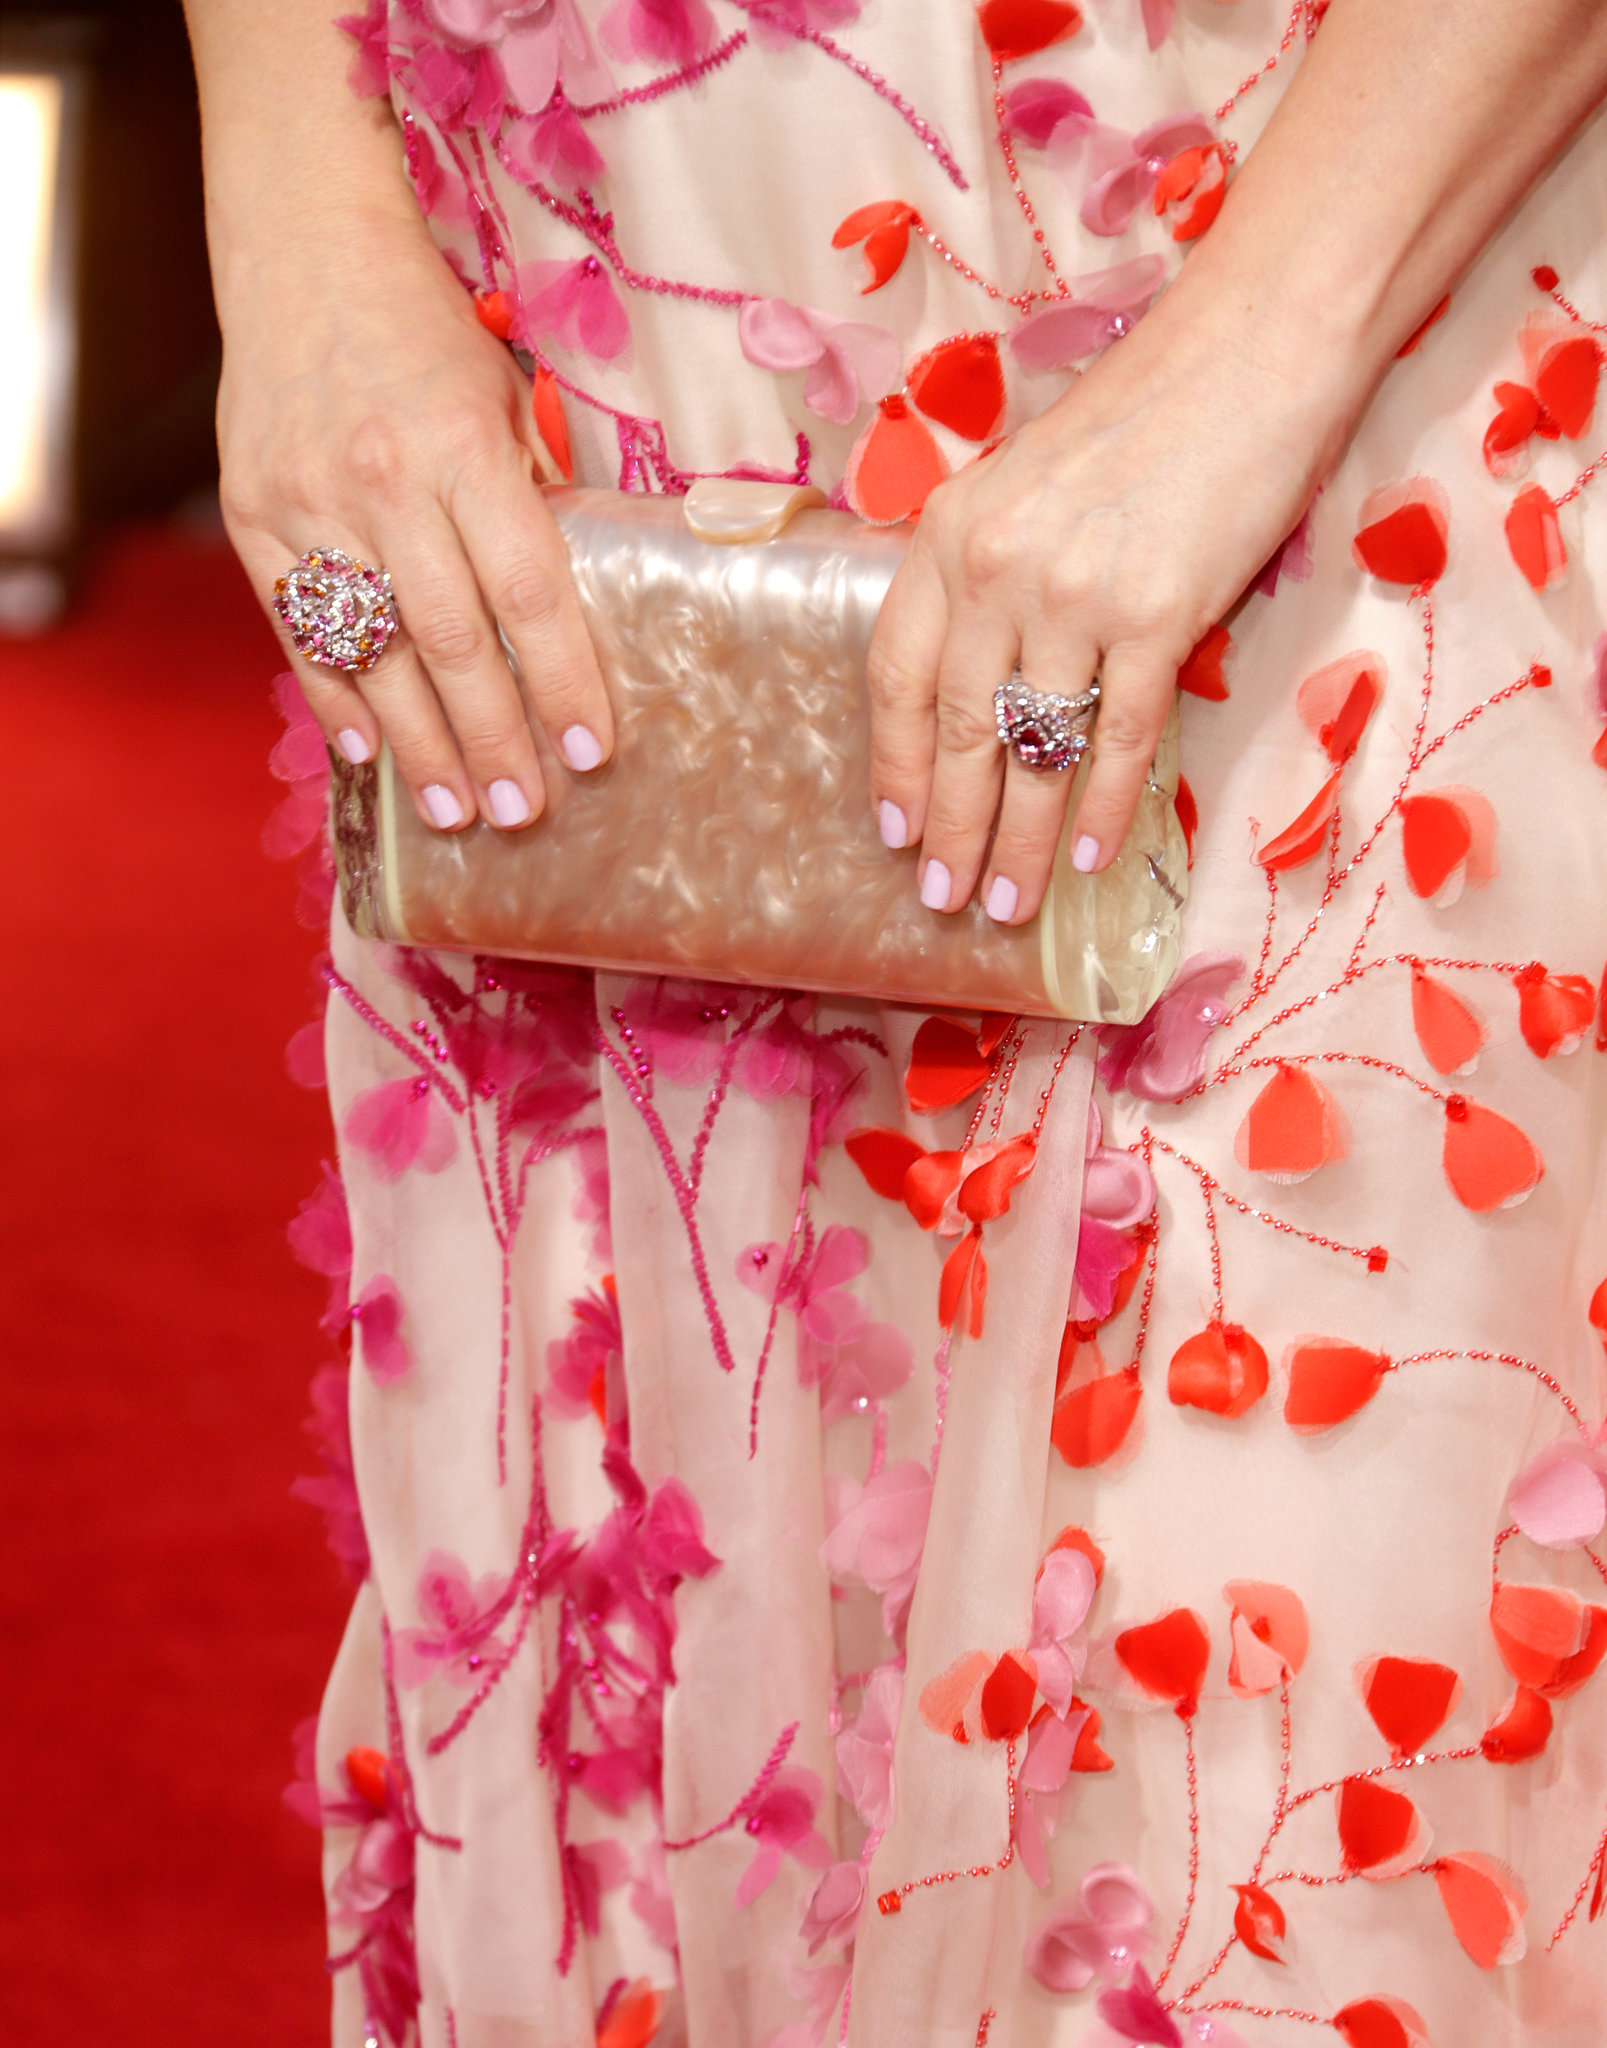 Drew added pretty Chanel Fine Jewelry rings and an Edie Parker clutch to her look.